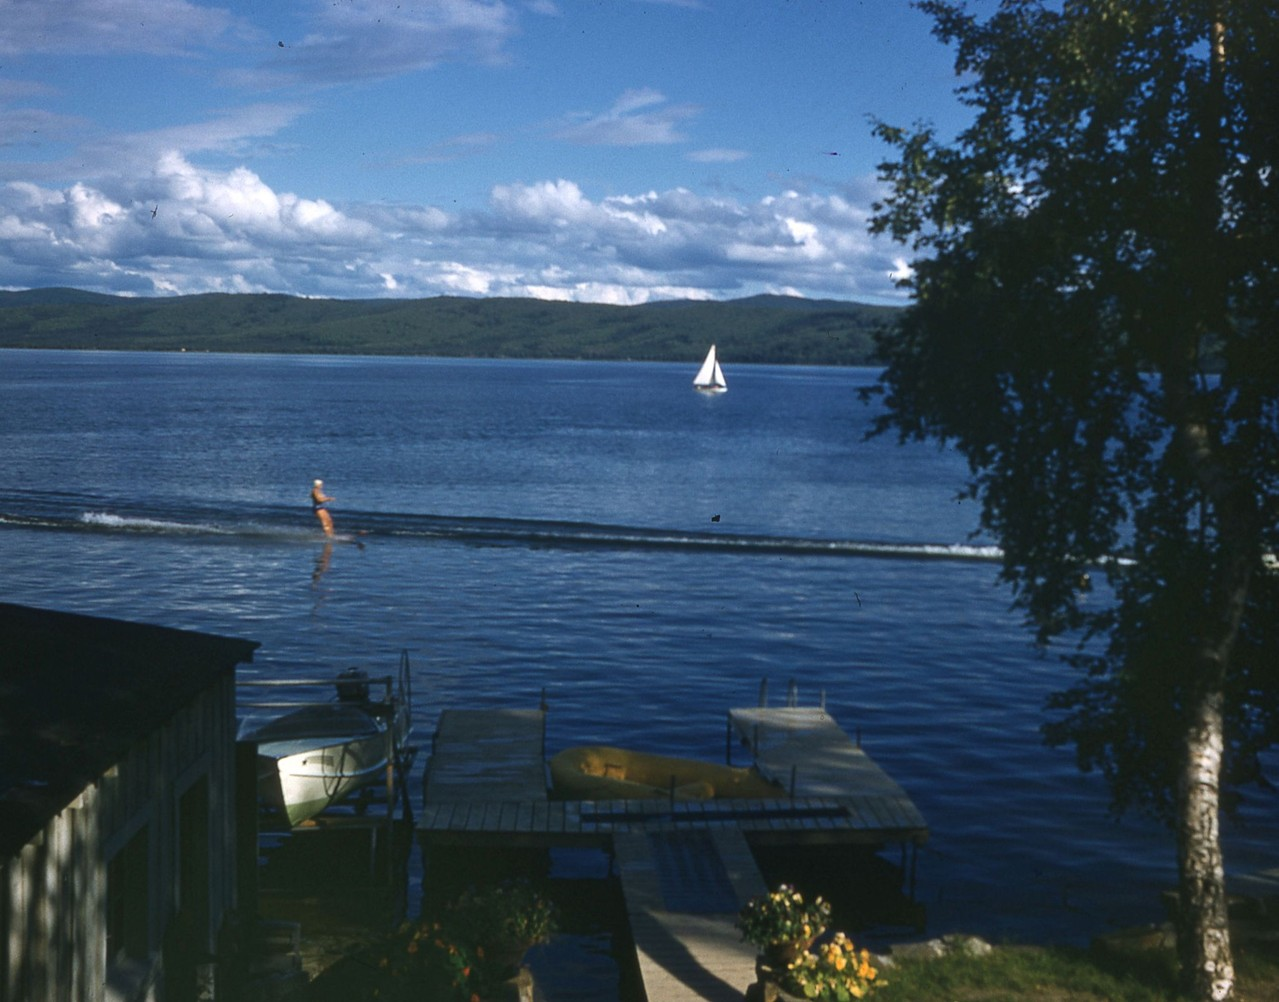 Sail boat and water skier taken in 1950's in front of Niewhoner cabin at 5th Street, Harding Lake.